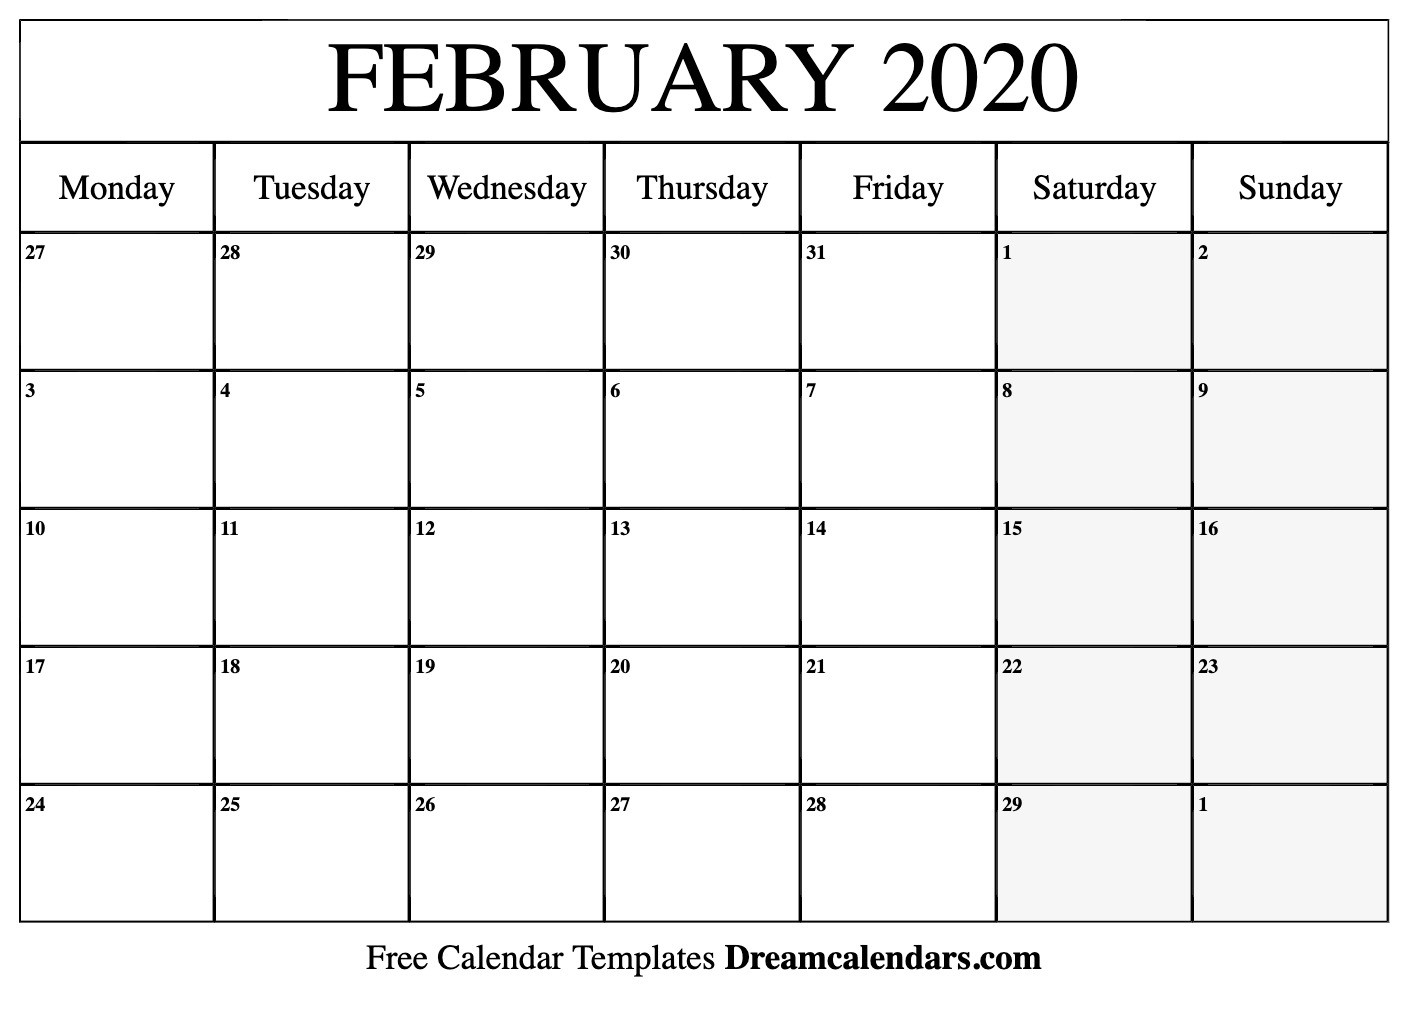 Printable February 2020 Calendar Templates - Helena Orstem